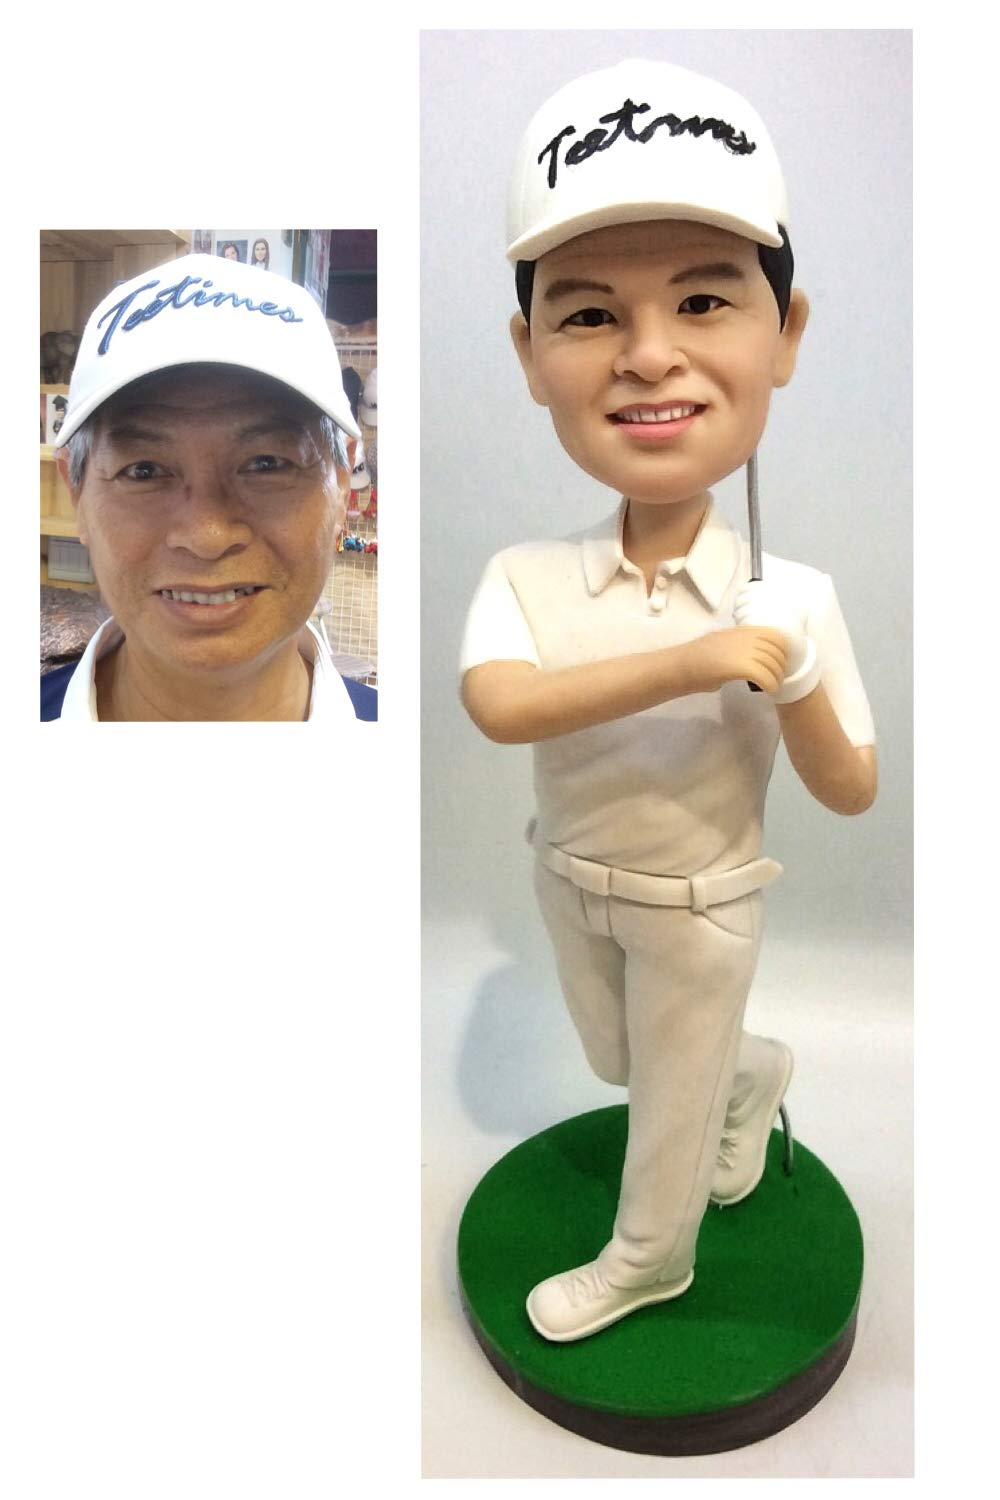 8.6 Custom Golfer Bobblehead Sportsman Figurine Personalized Occupational Gifts Valentines Day Gift Business Gift Father Gift Boyfriend Gift Friends Gifts Based on Your Photos for Christmas Day